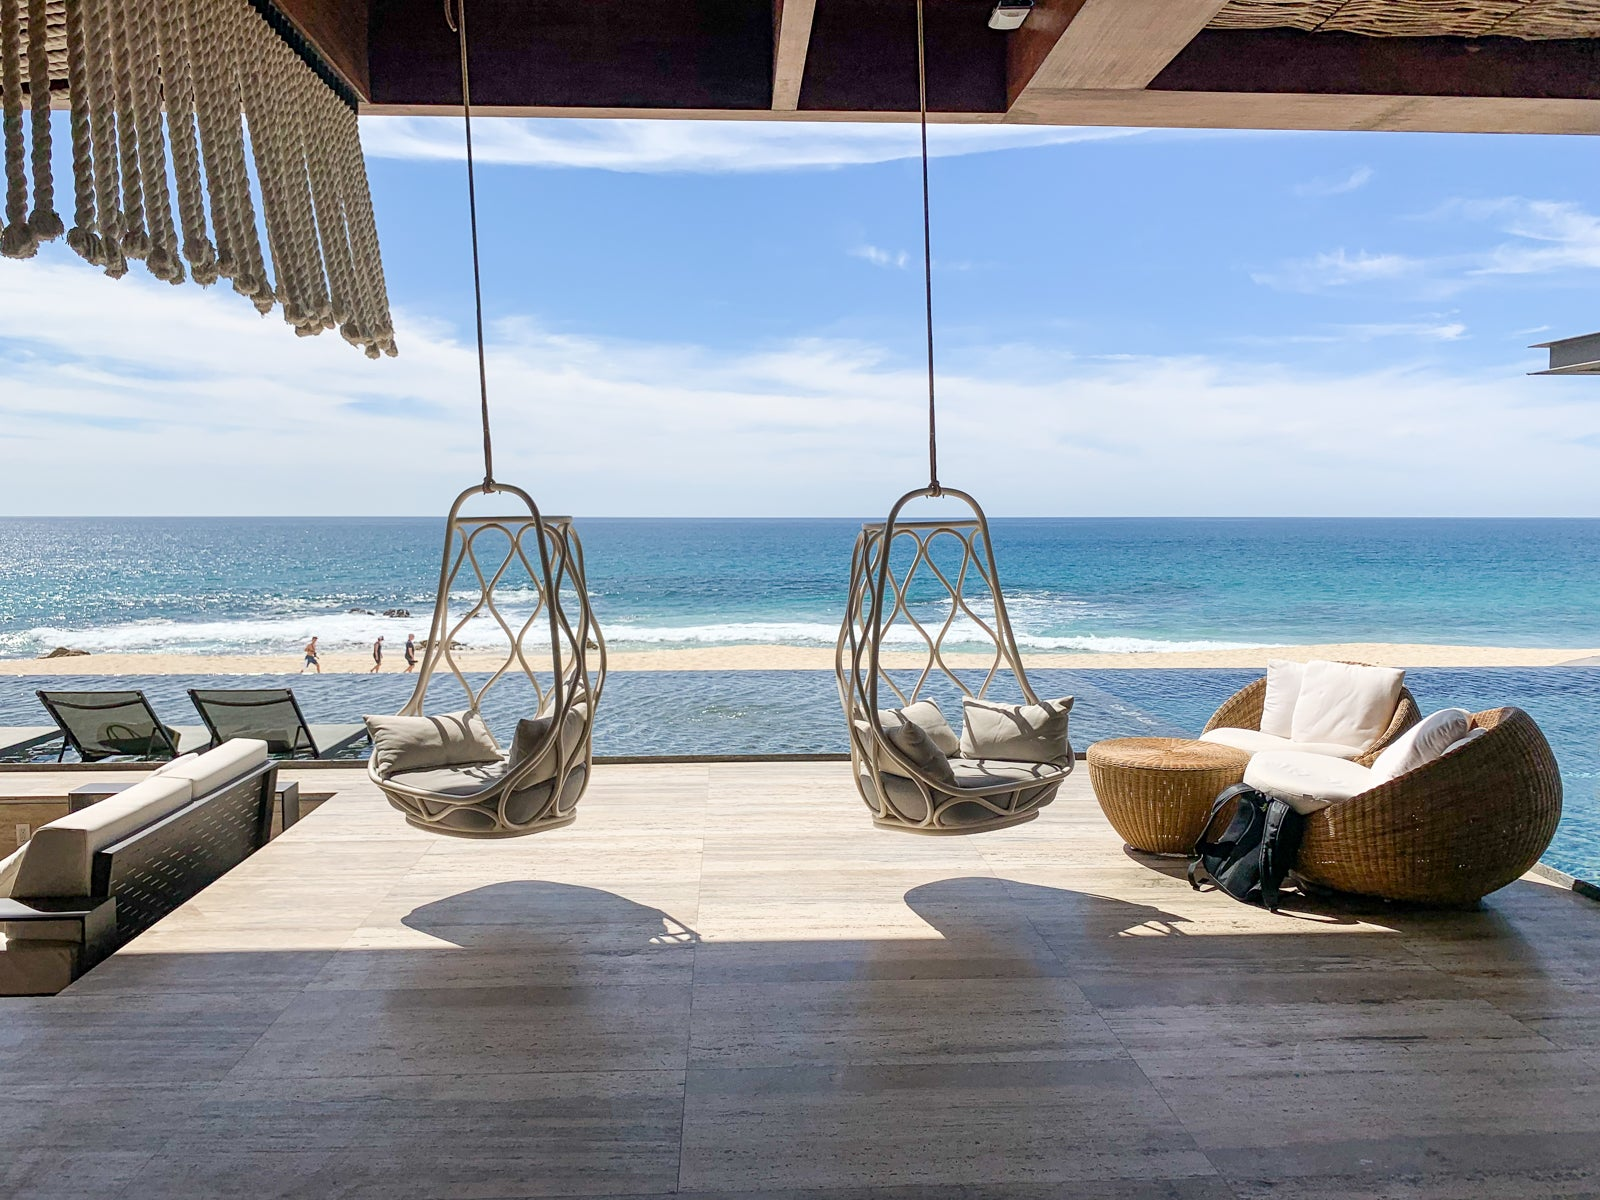 14 of our favorite points hotels on the beach in Mexico